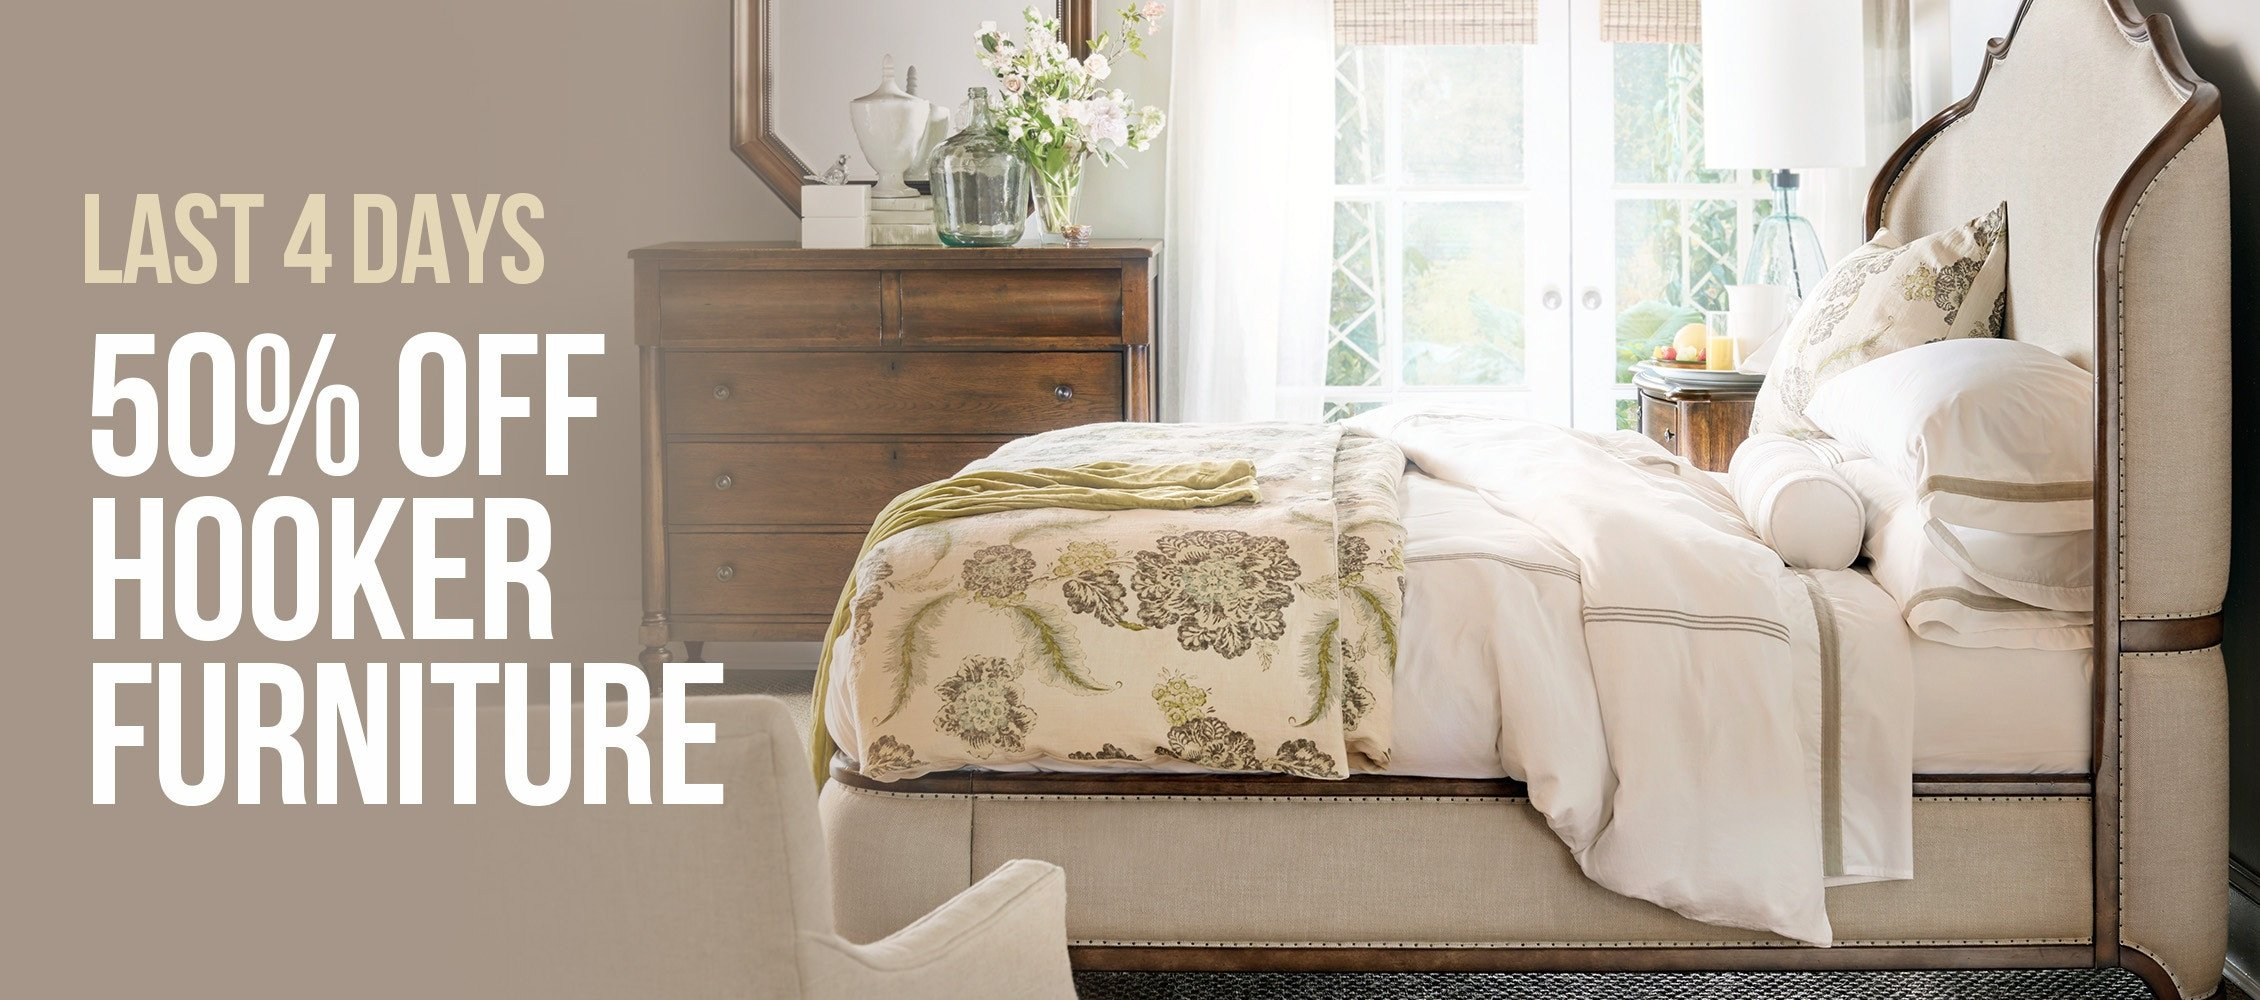 Rooms to Go Bedroom Furniture Sale Inspirational Gorman S Home Furnishings & Interior Design Quality